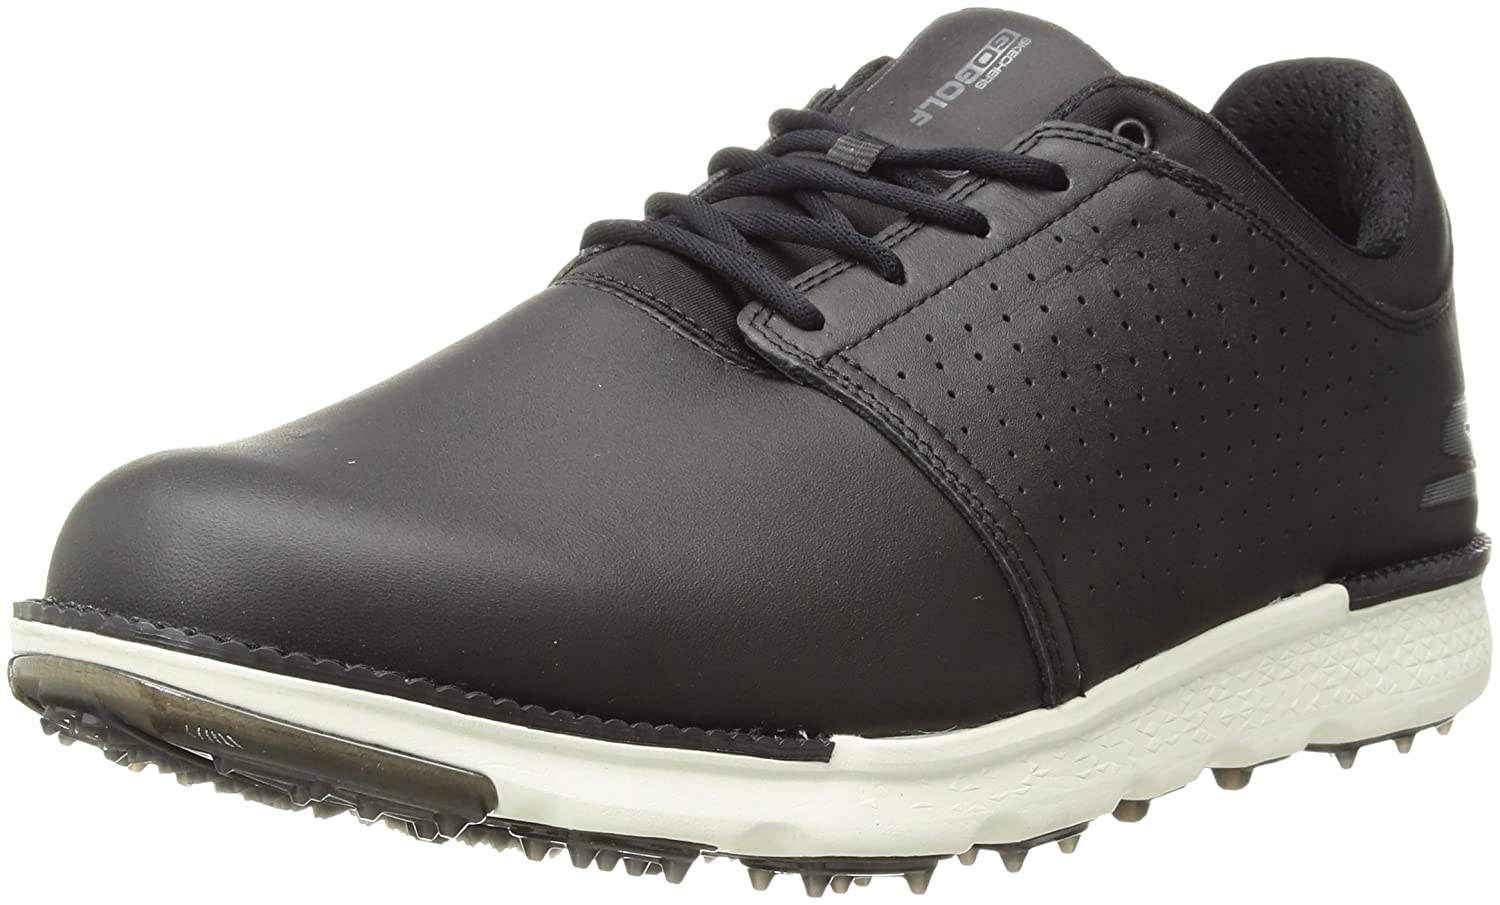 Skechers Men's Go Golf Elite 3 Approach Lx Walking Shoe B074RNWWYV 9 D(M) US|Black/White